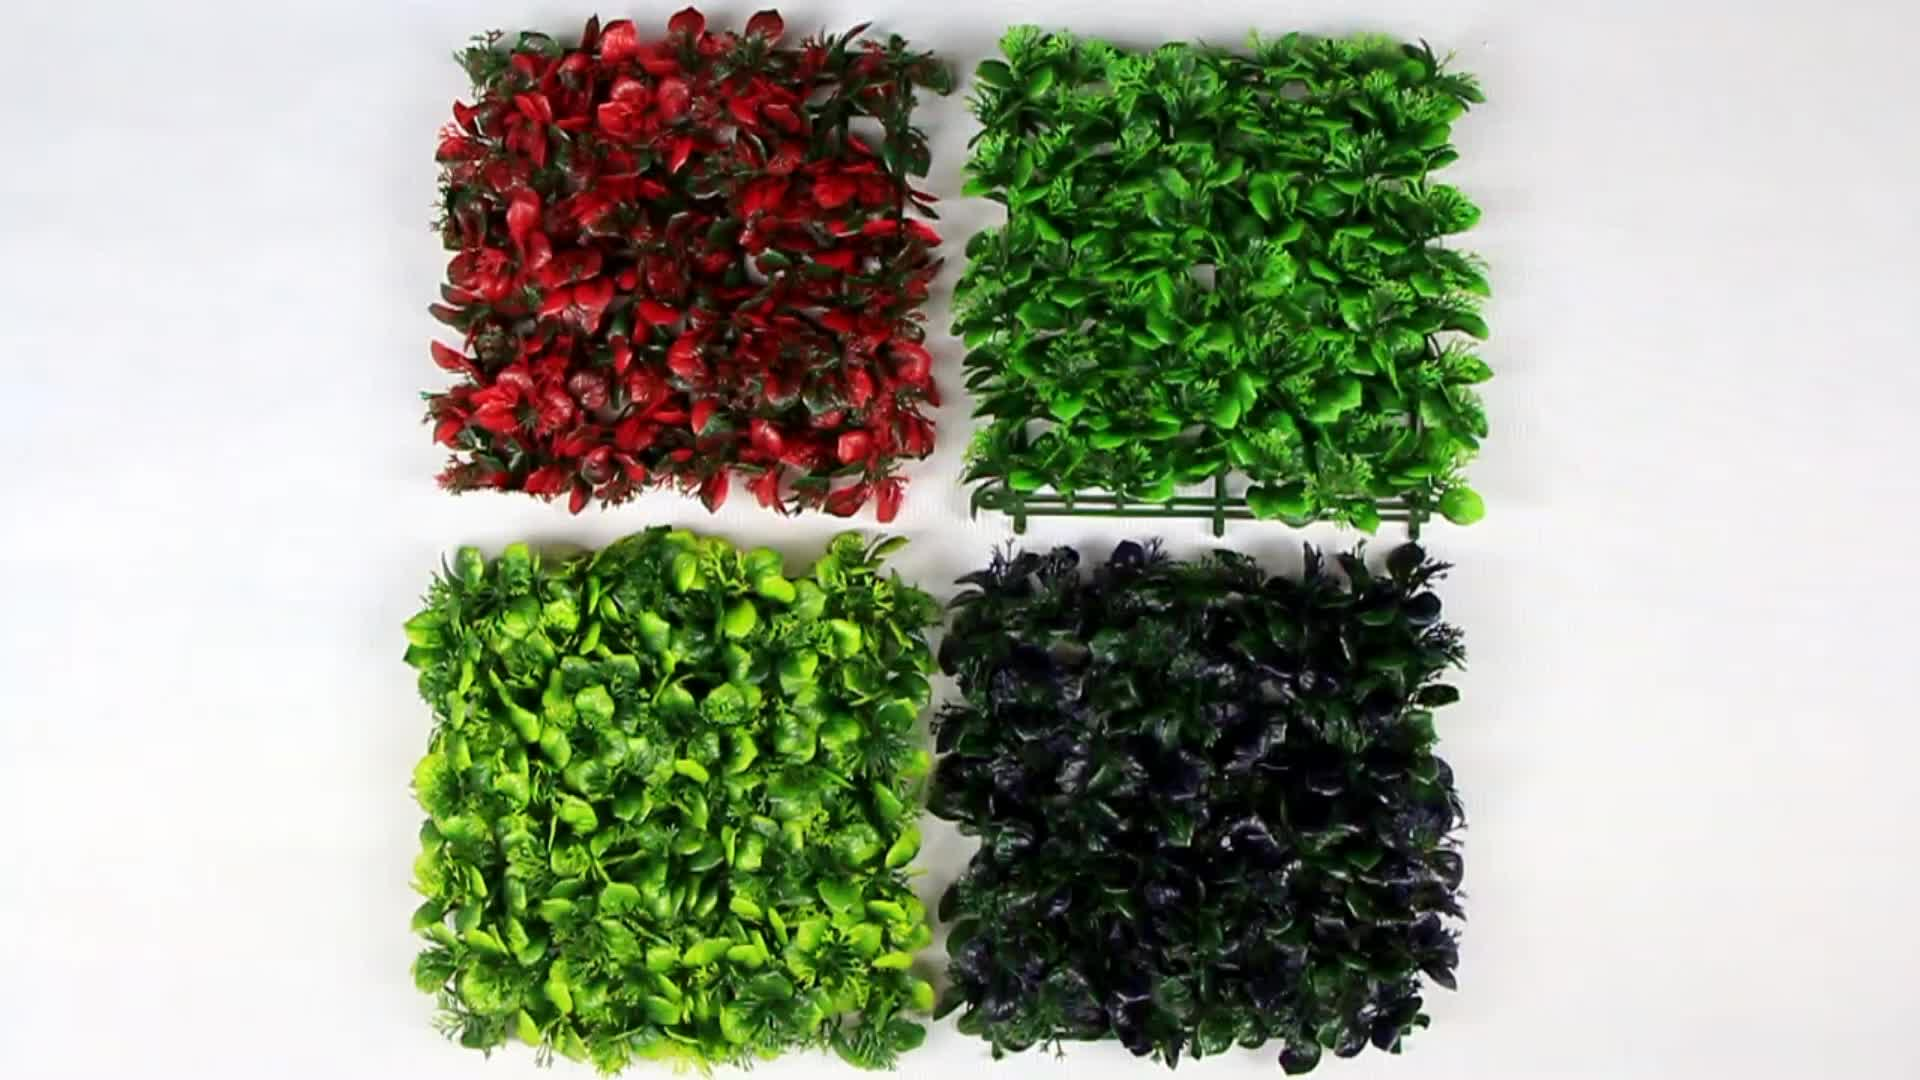 uv protection outdoor artificial plants hedges for screen covering